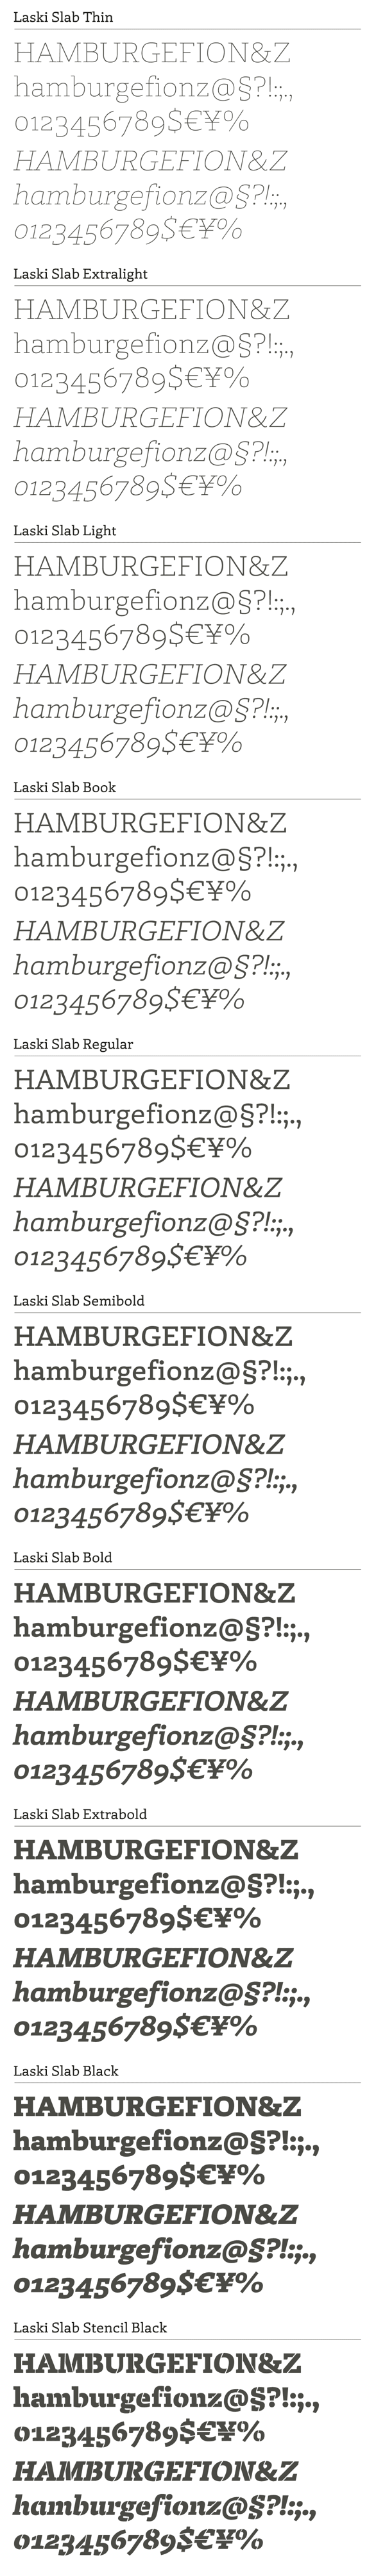 All weights and styles of the complete family plus matching italics.